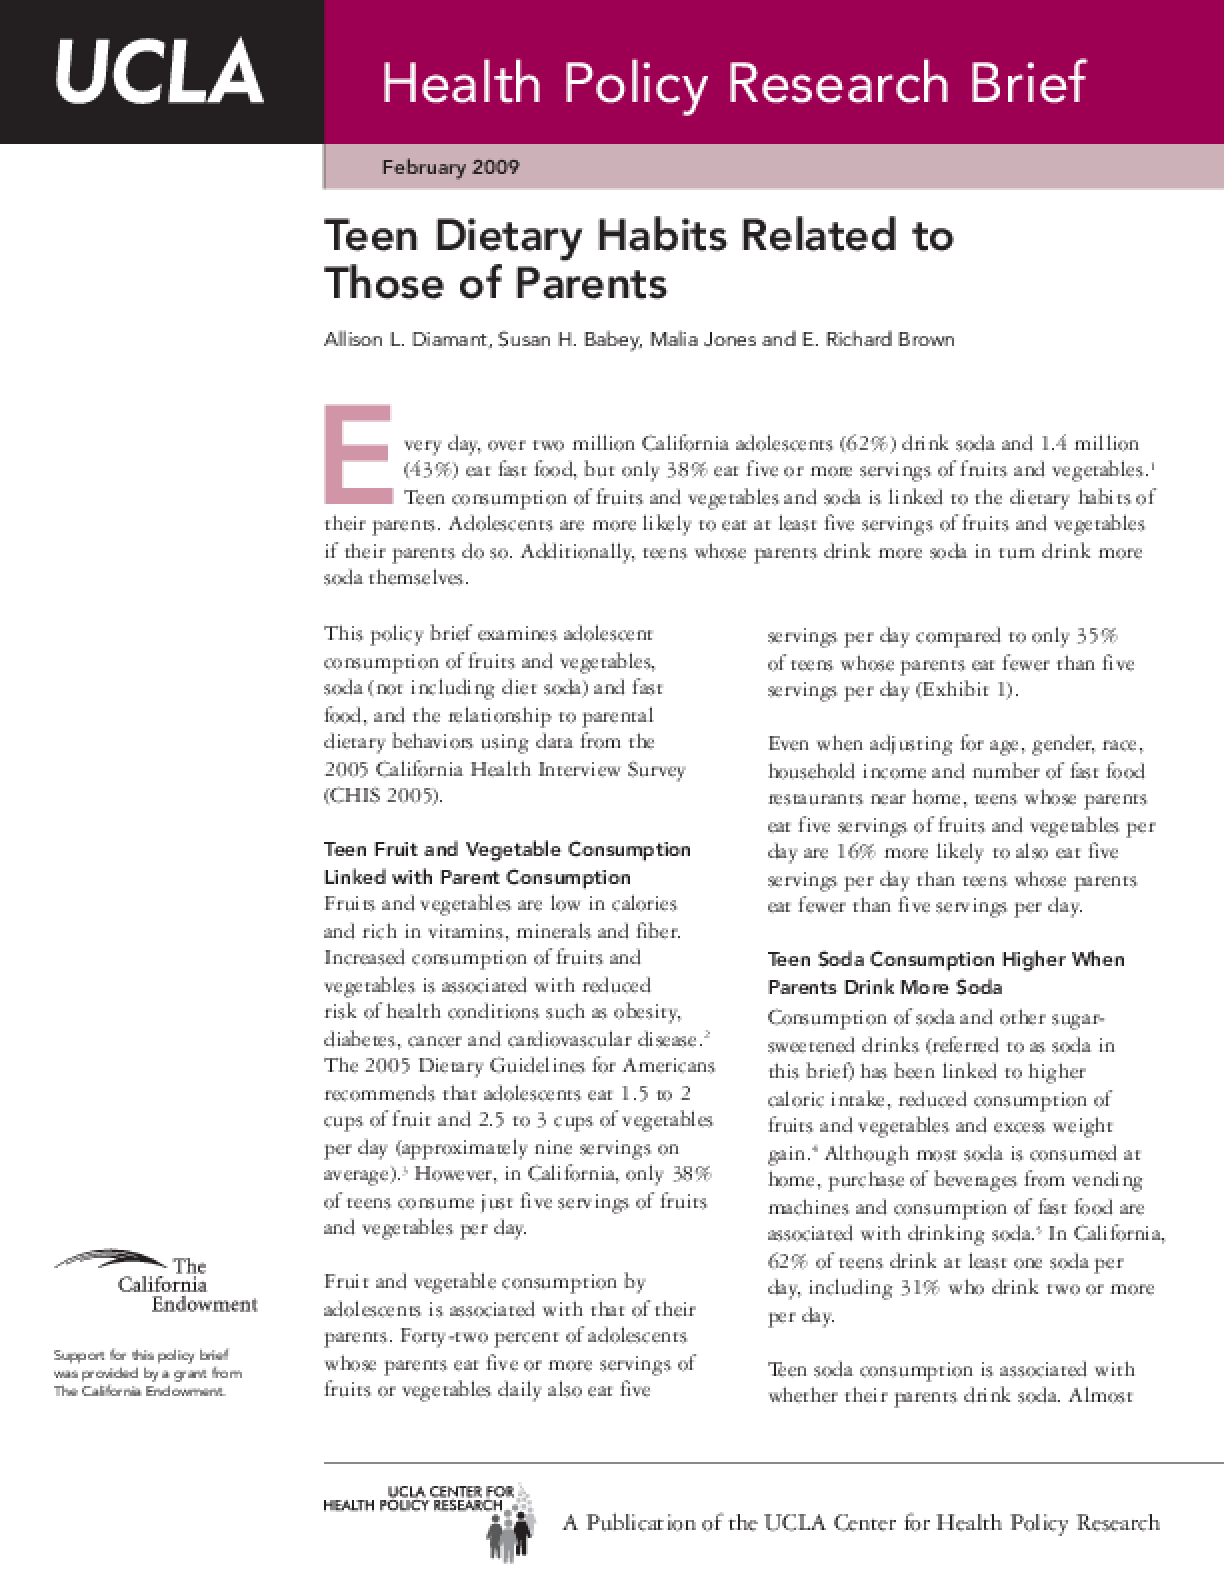 Teen Dietary Habits Related to Those of Parents